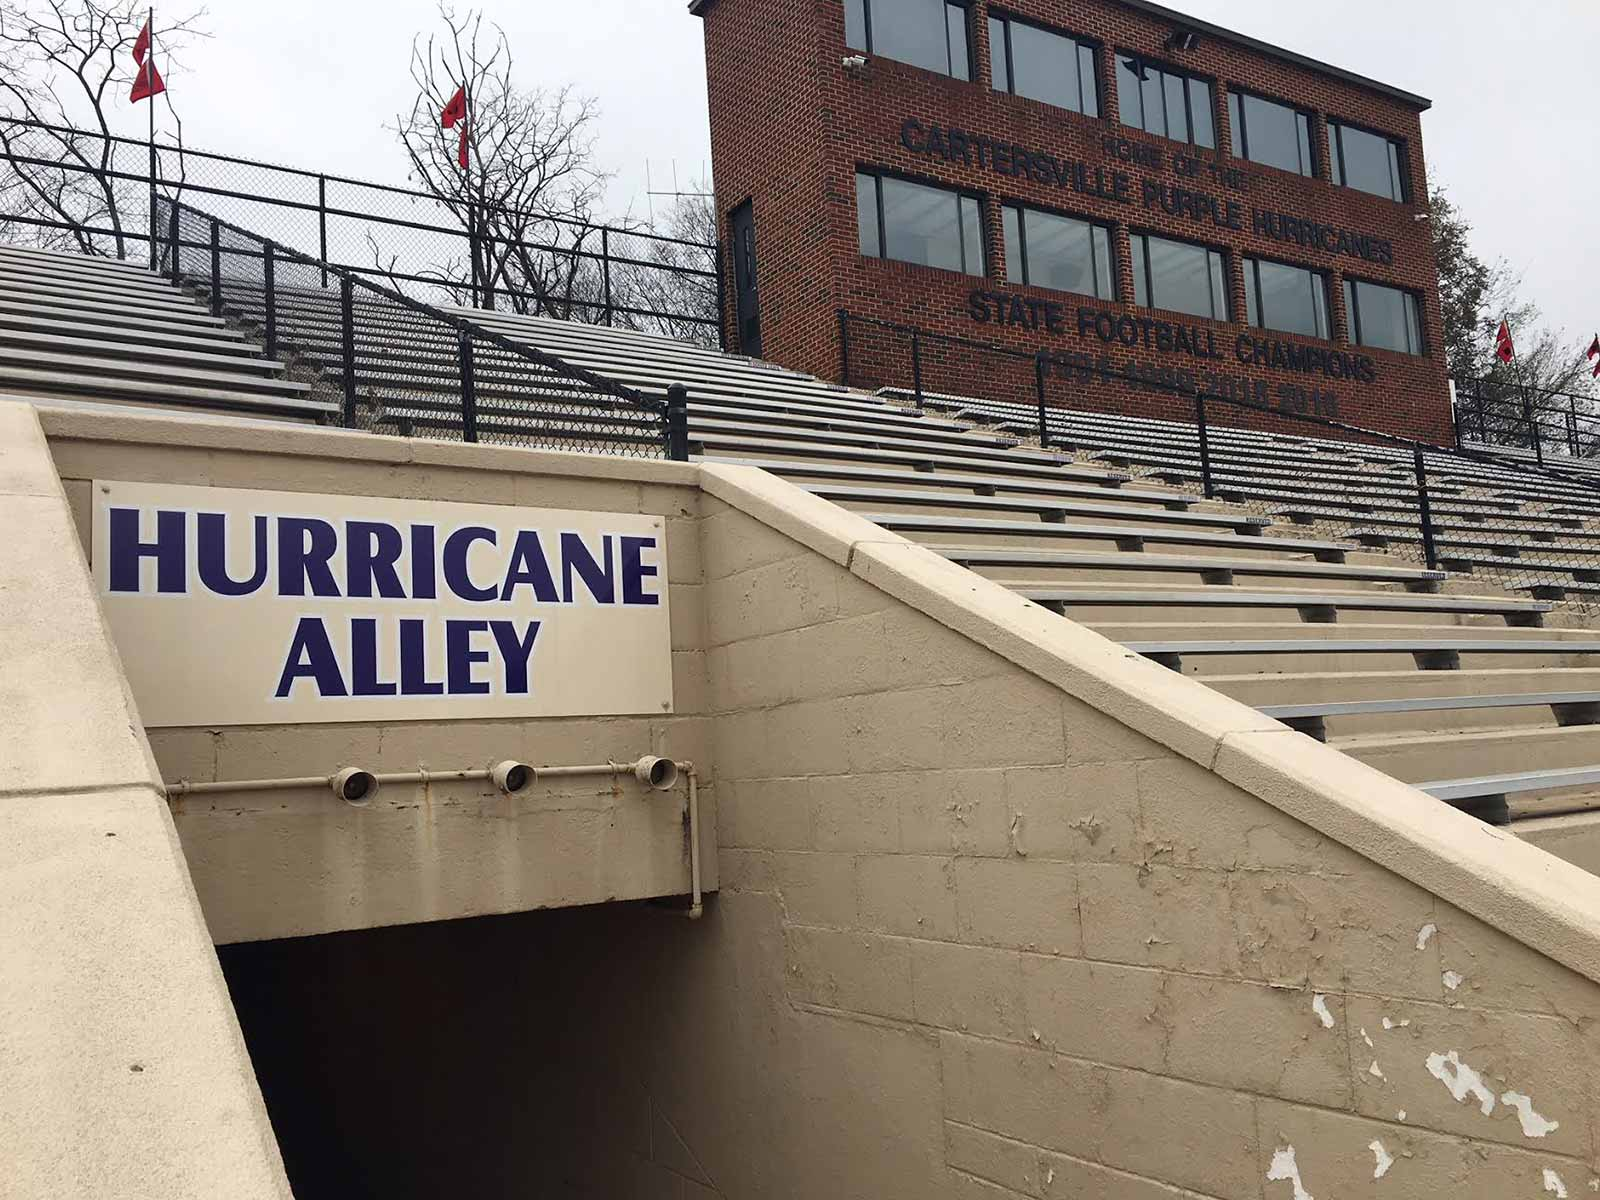 Weinman Stadium is the home to the Cartersville High Hurricanes.The school is constructing a $5.8 million new athletic complex next to the stadium, primarily for football.